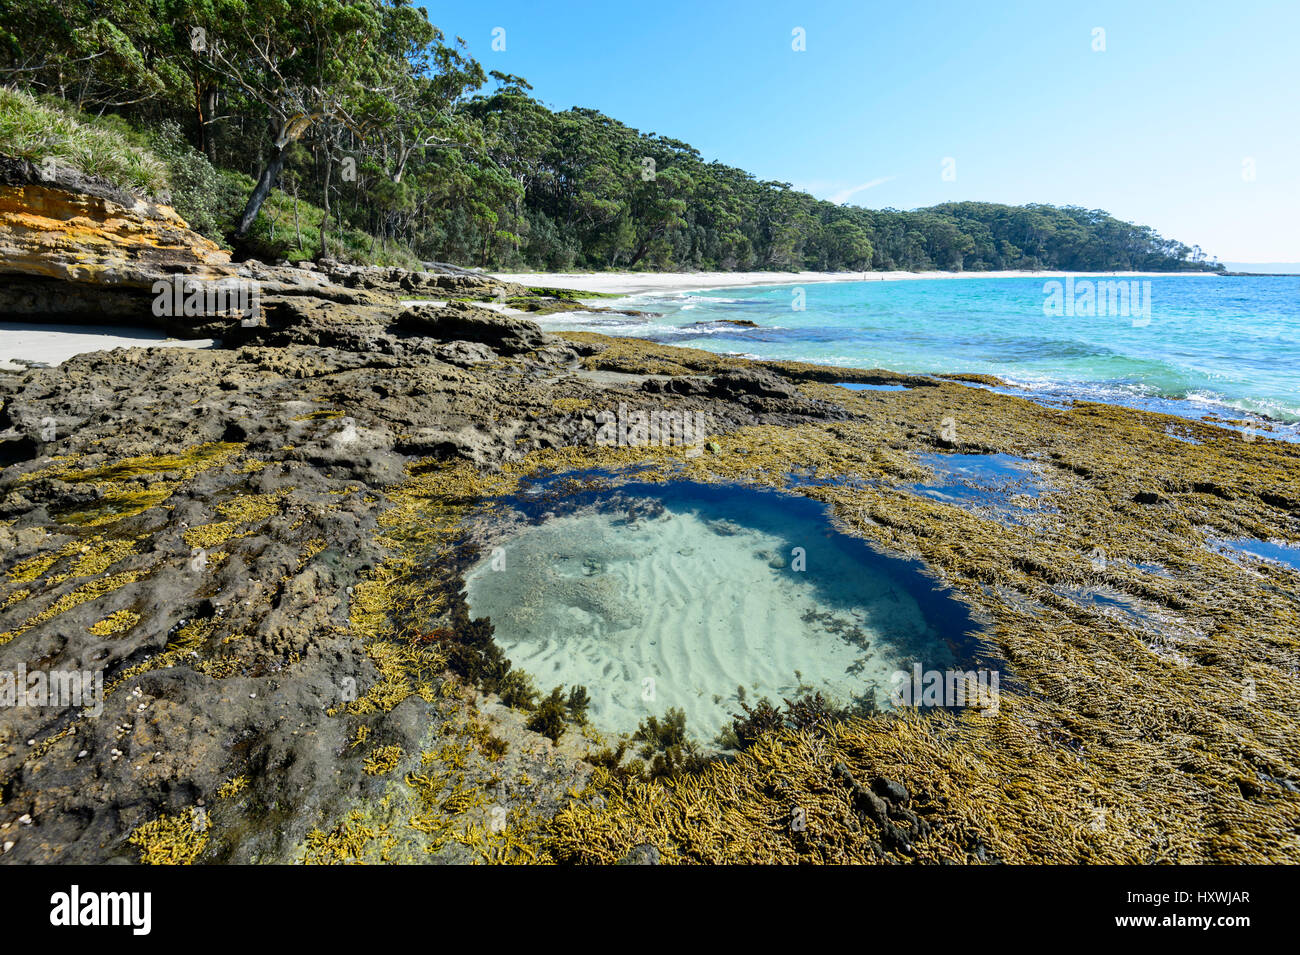 Circular rock pool and seaweeds at Murray's Beach, Booderee National Park, Jervis Bay,  New South Wales, NSW, - Stock Image